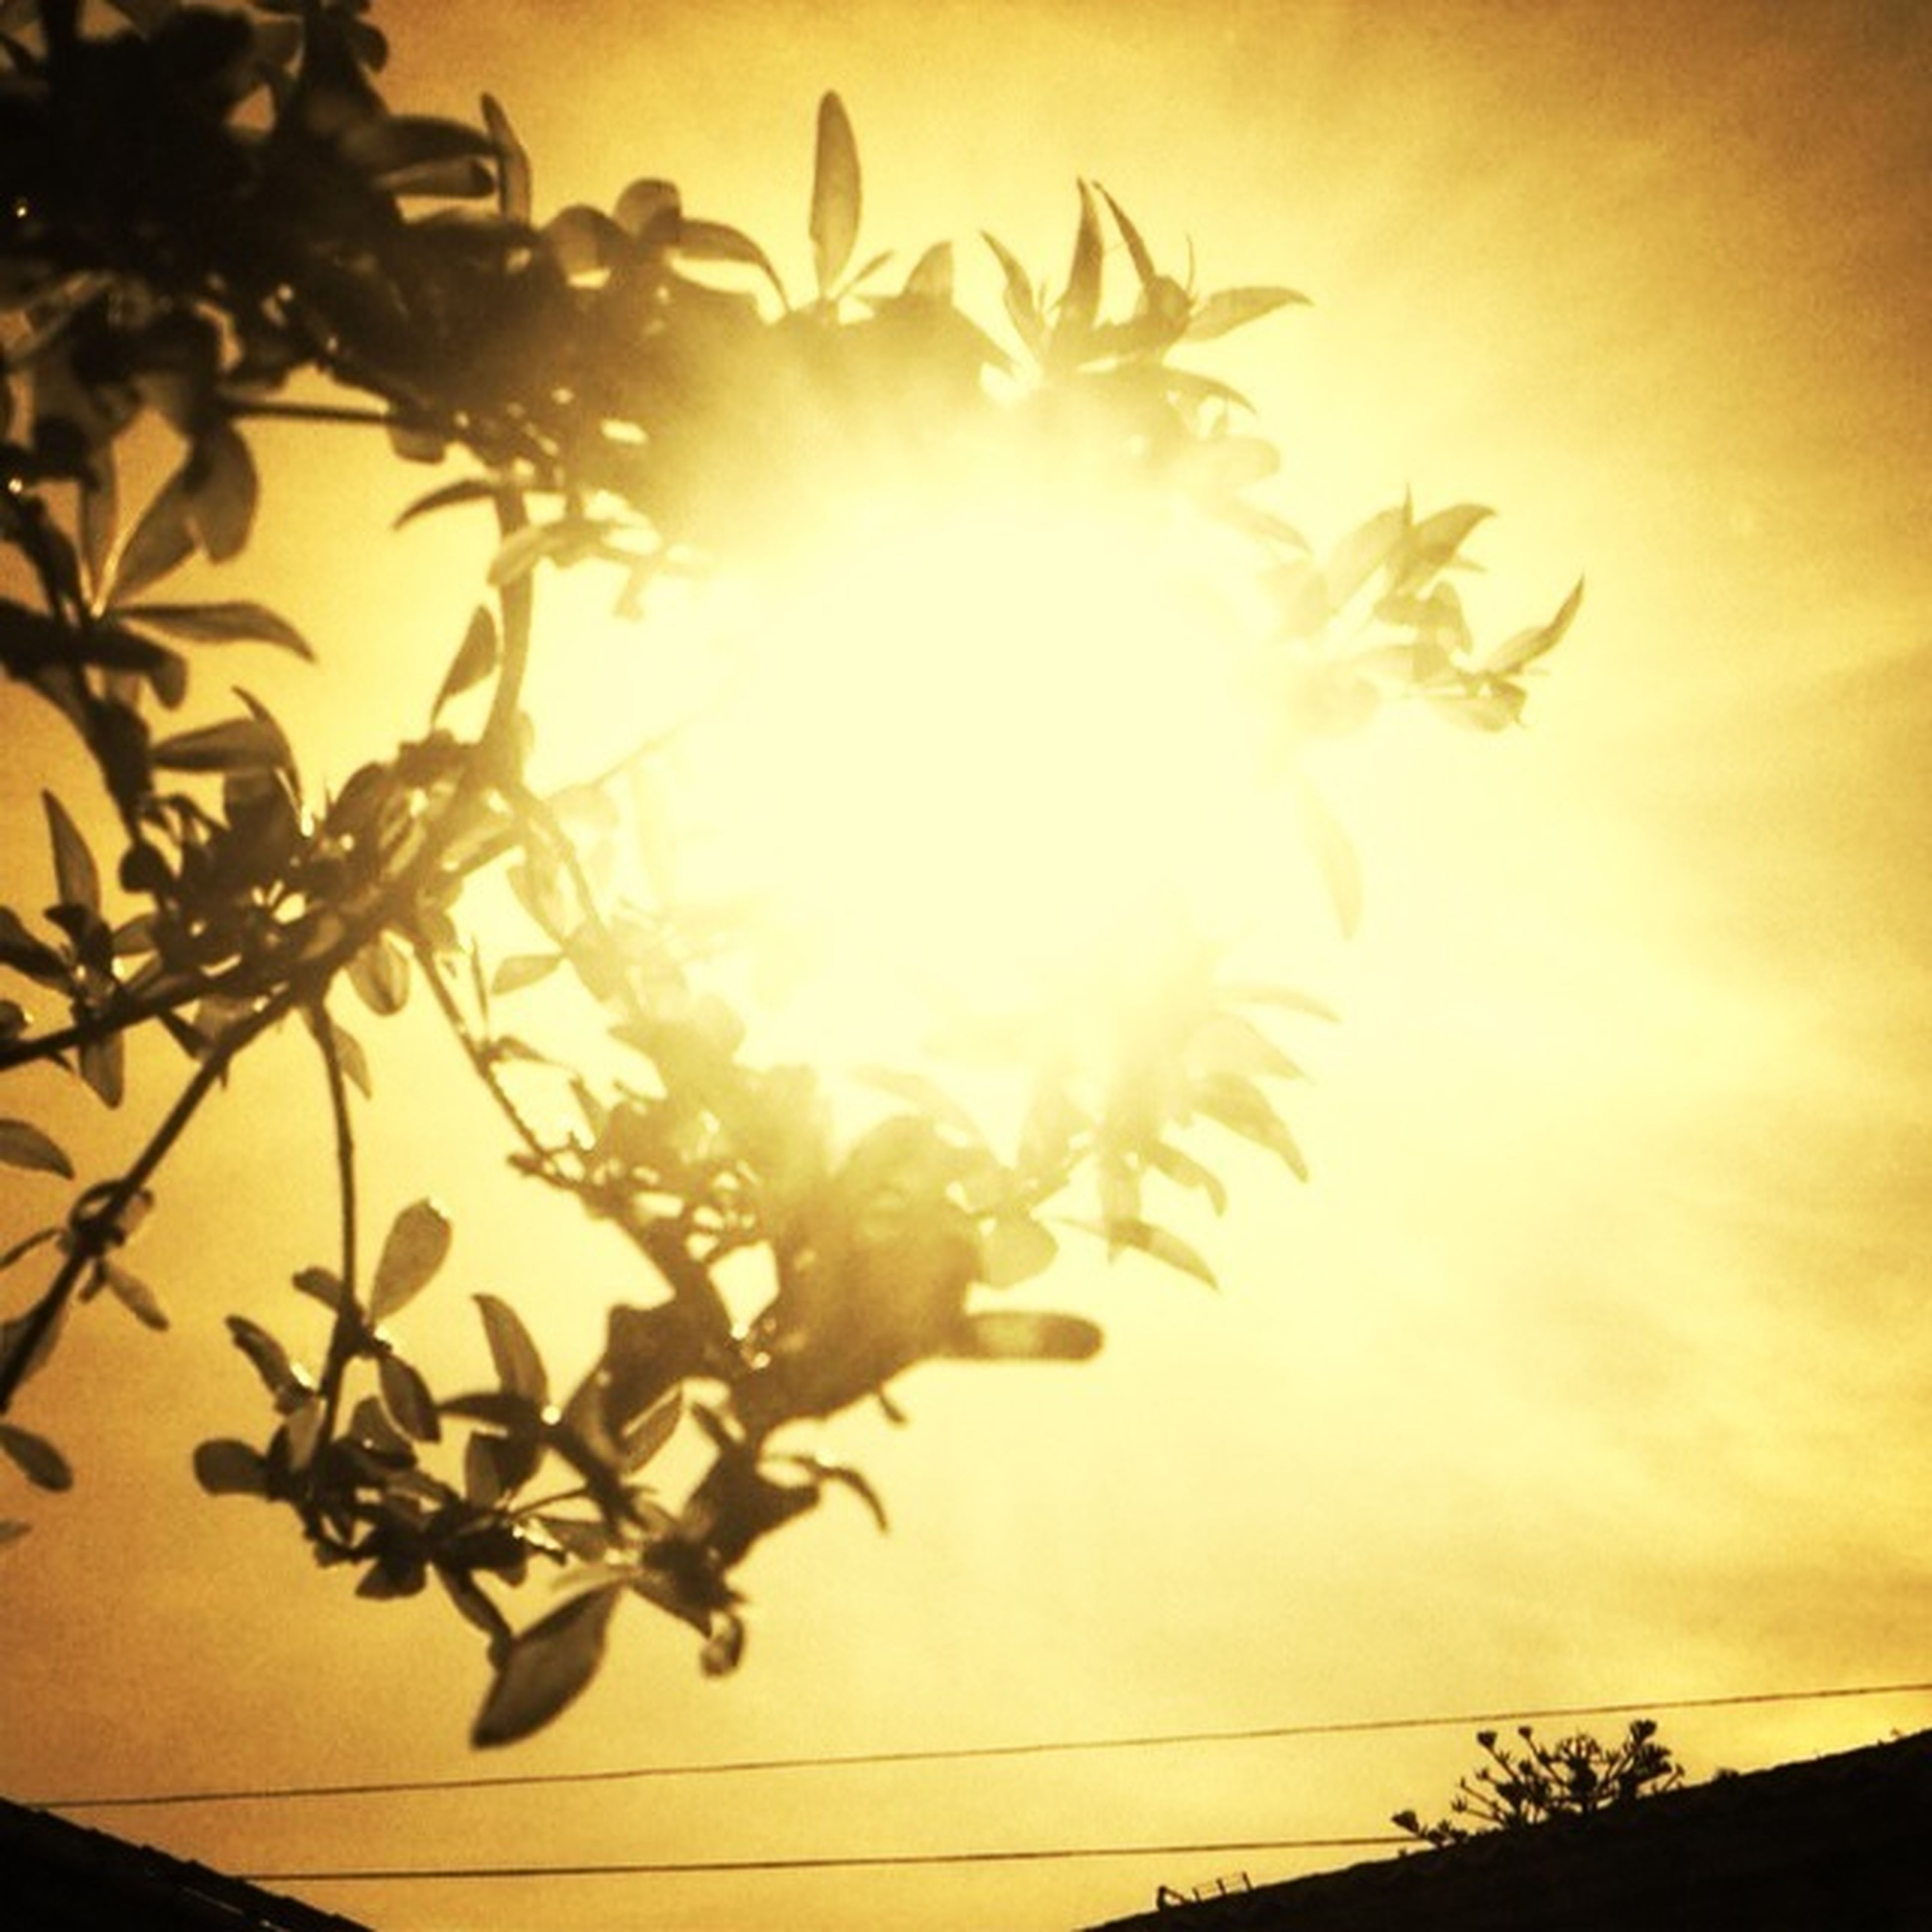 sun, sunlight, sunset, sunbeam, low angle view, sky, growth, lens flare, nature, leaf, beauty in nature, orange color, silhouette, plant, no people, tree, indoors, bright, tranquility